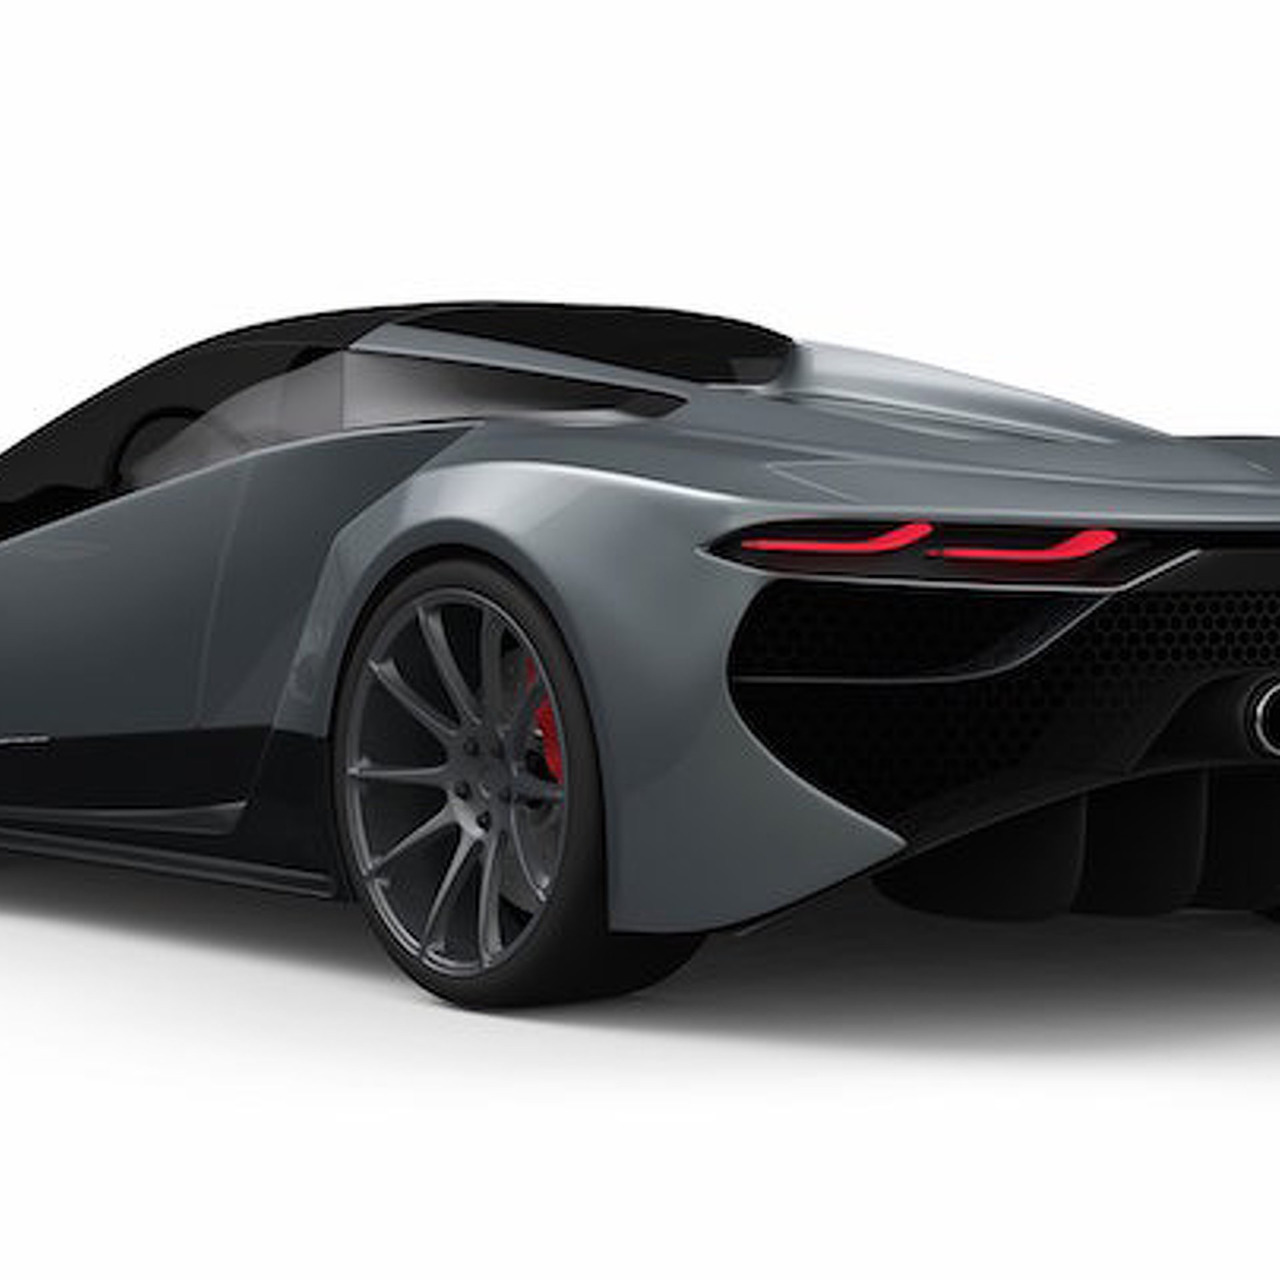 American Startup PSC Motors Wants to Change the Supercar Game Forever